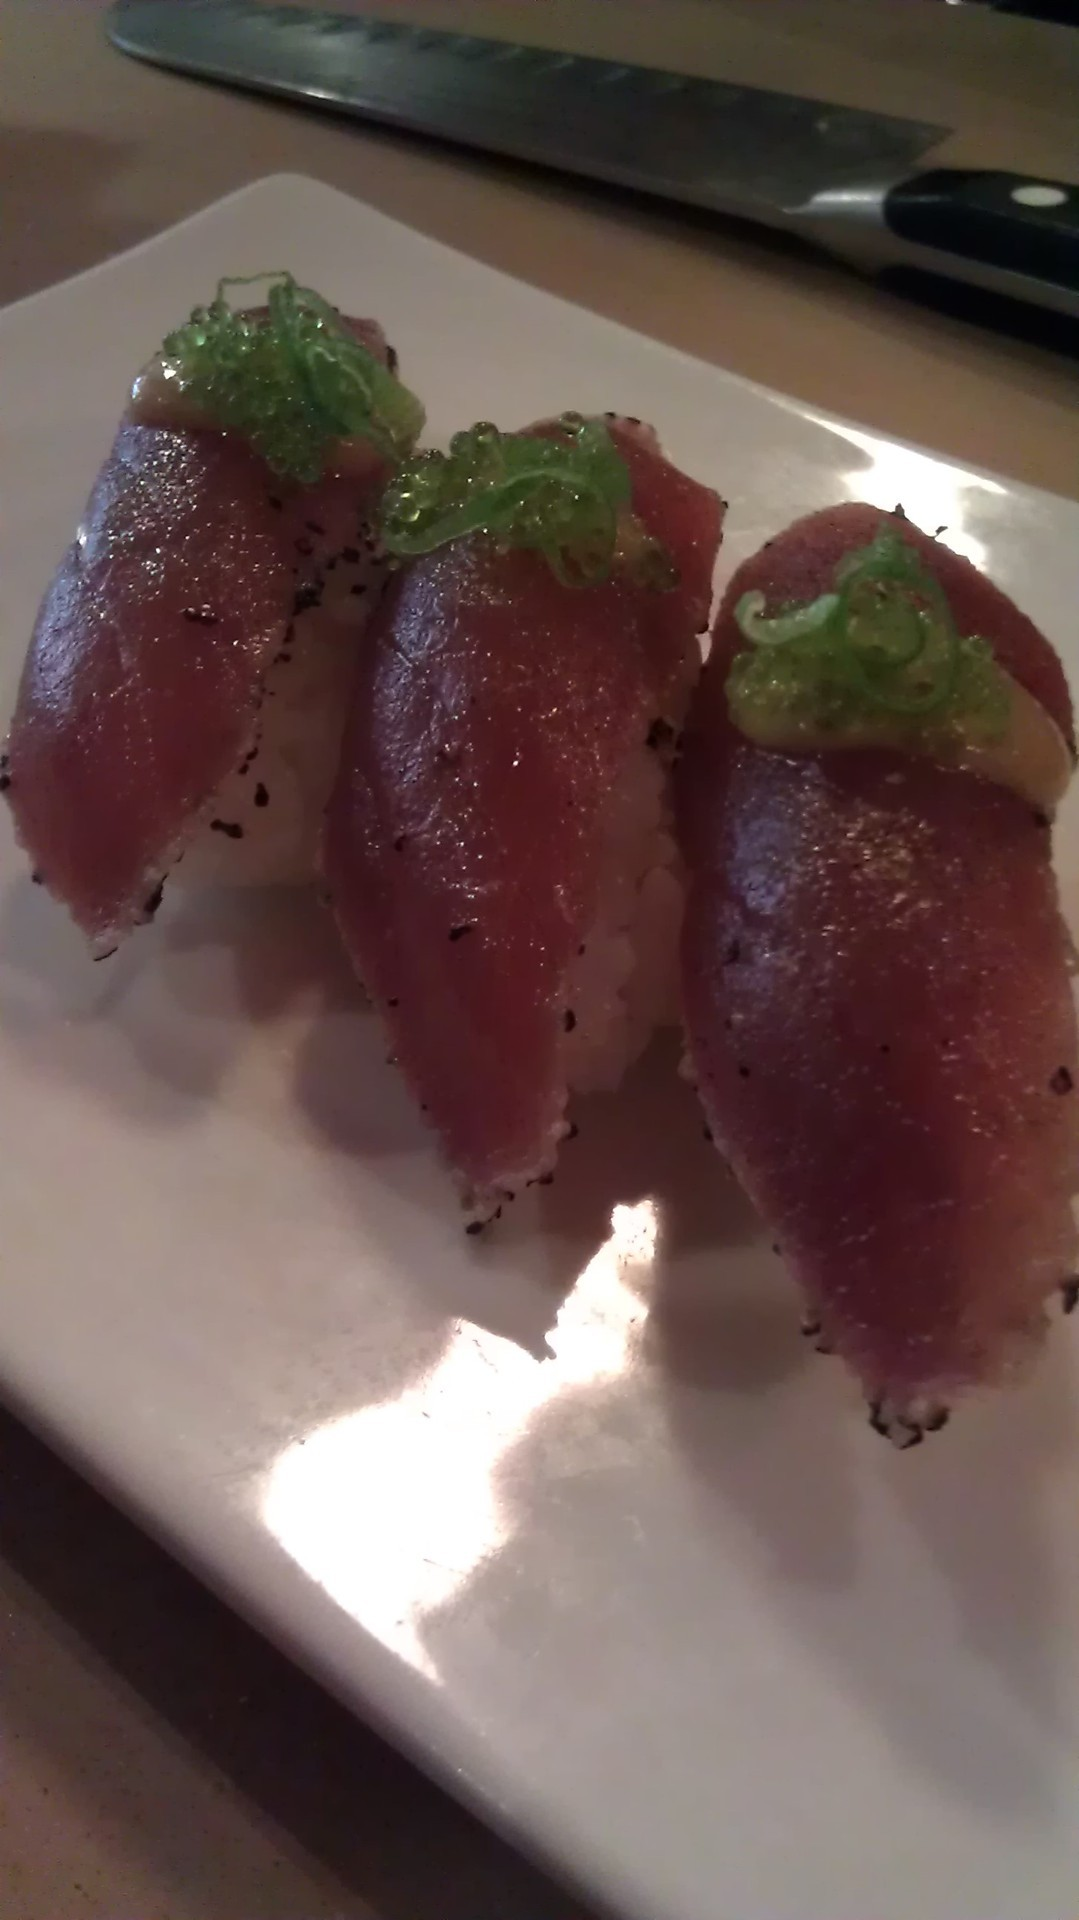 Try our new Tuna Tataki. It's seared tuna with a little bit of salted black pepper, topped with some miso sauce and scallions. Yummy!